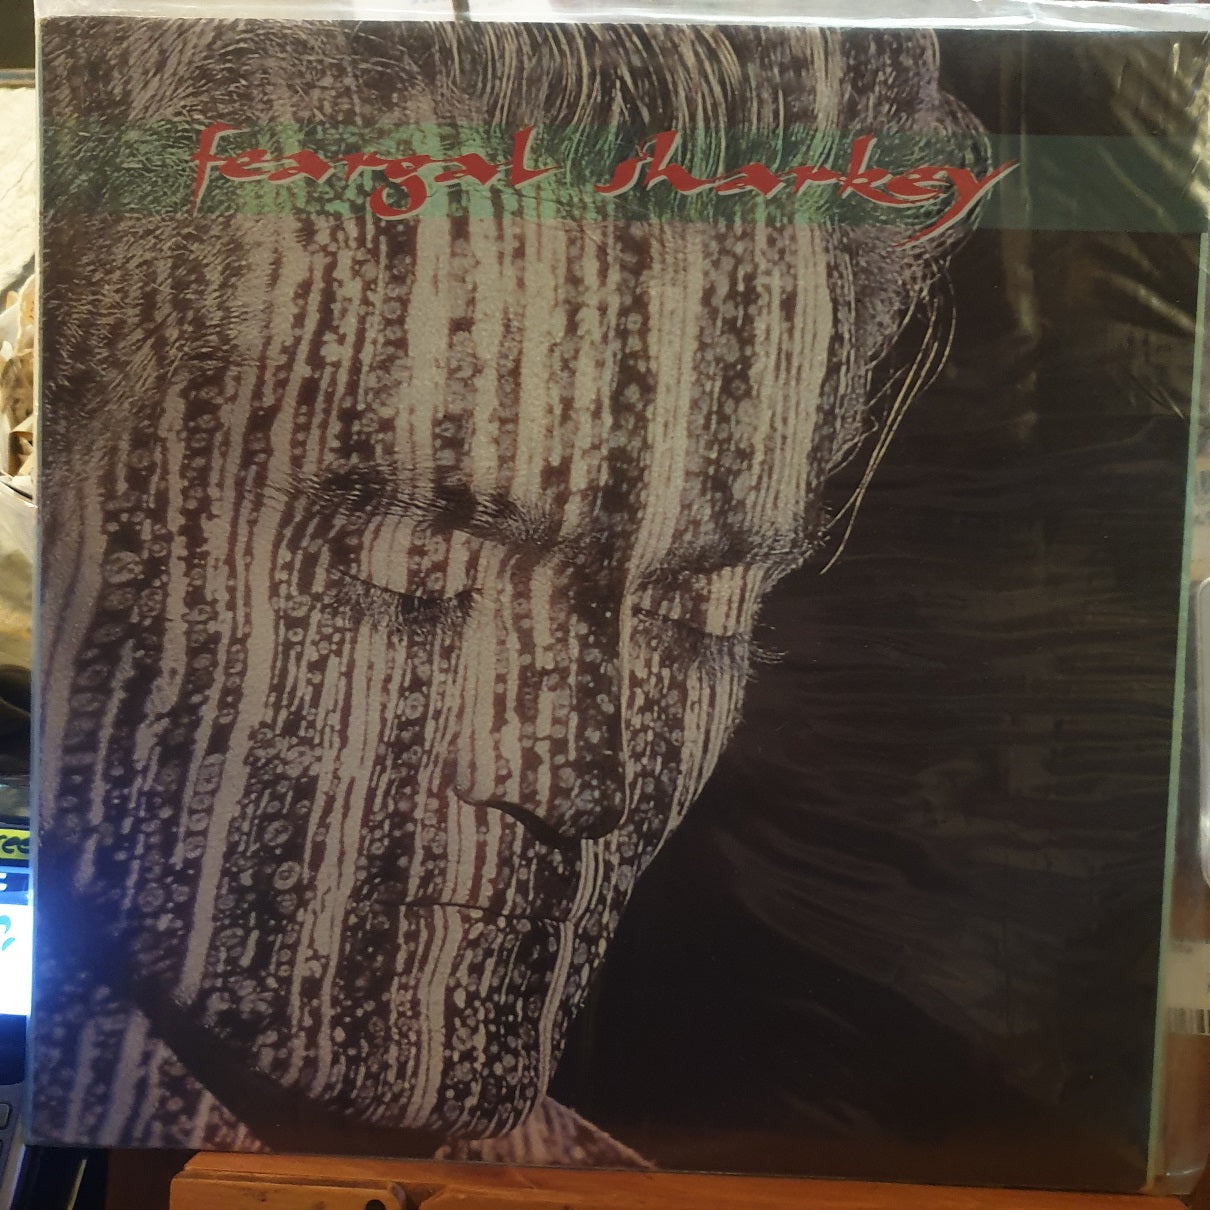 Feargal Sharky, Self Titled LP (2nd Hand)